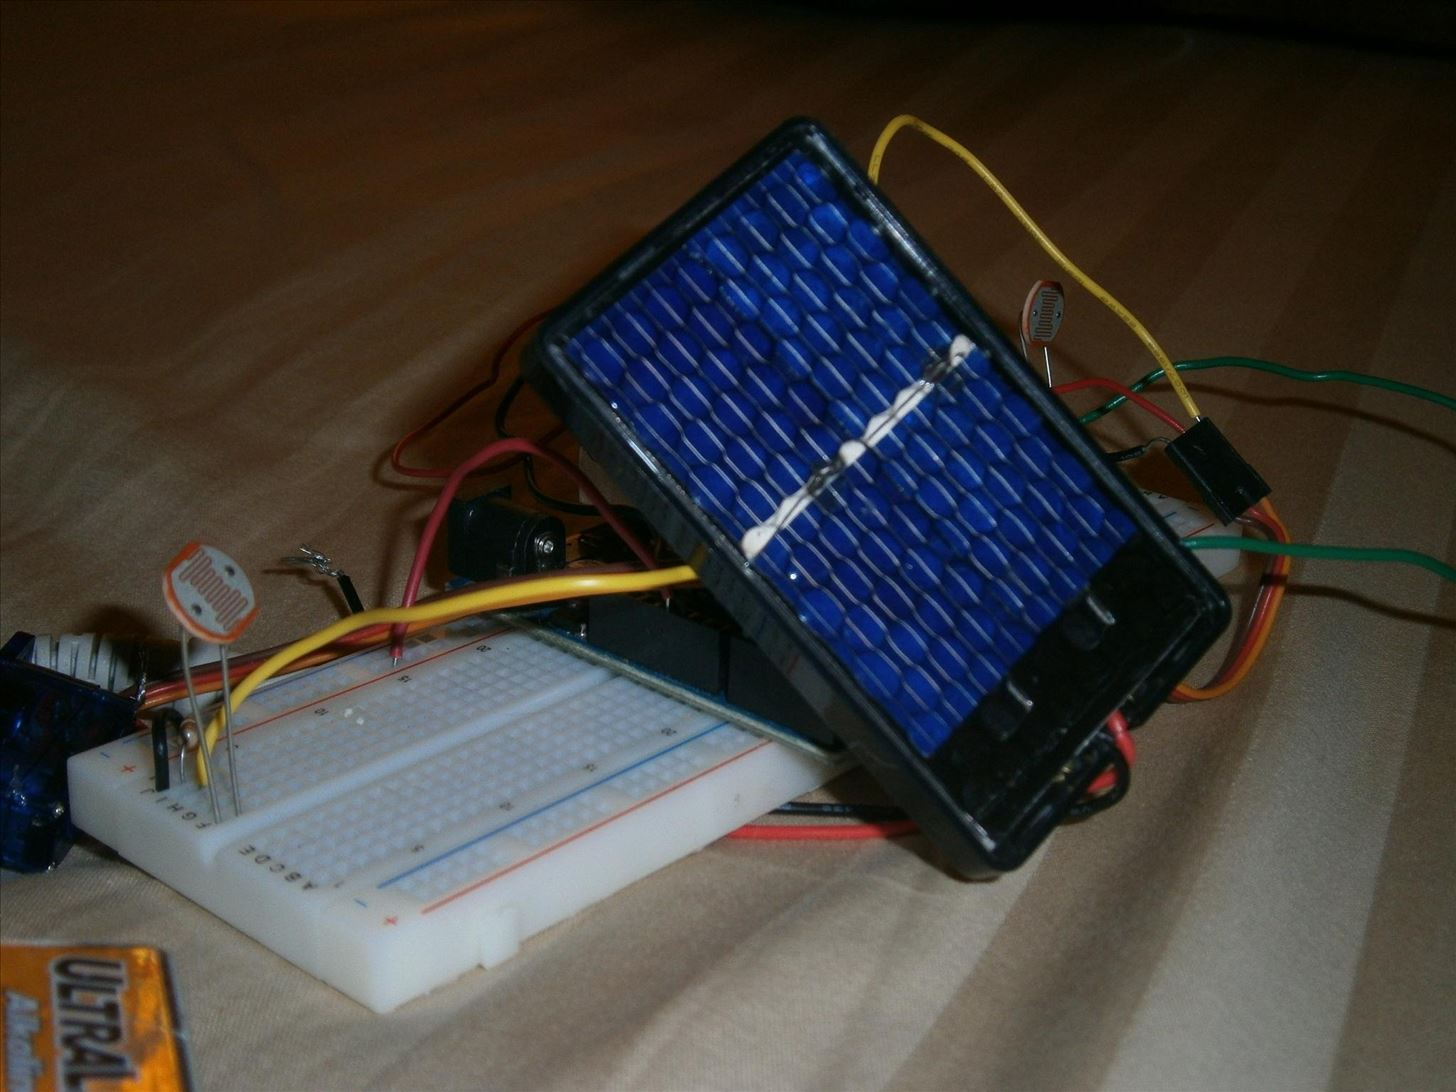 Make Your Solar-Powered Projects More Efficient with This DIY Sun Tracker